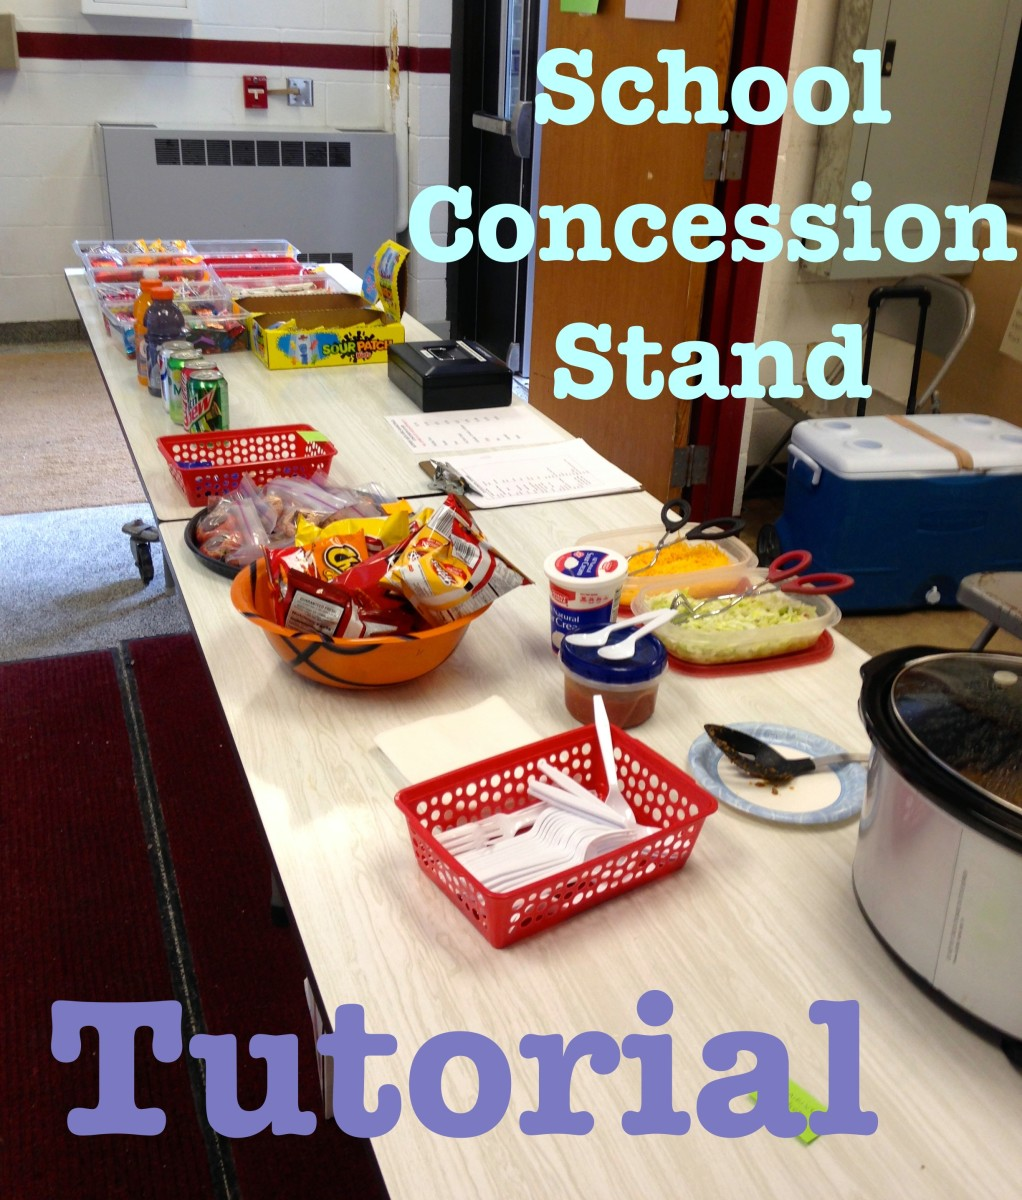 How To Run A School Concession Stand Owlcation